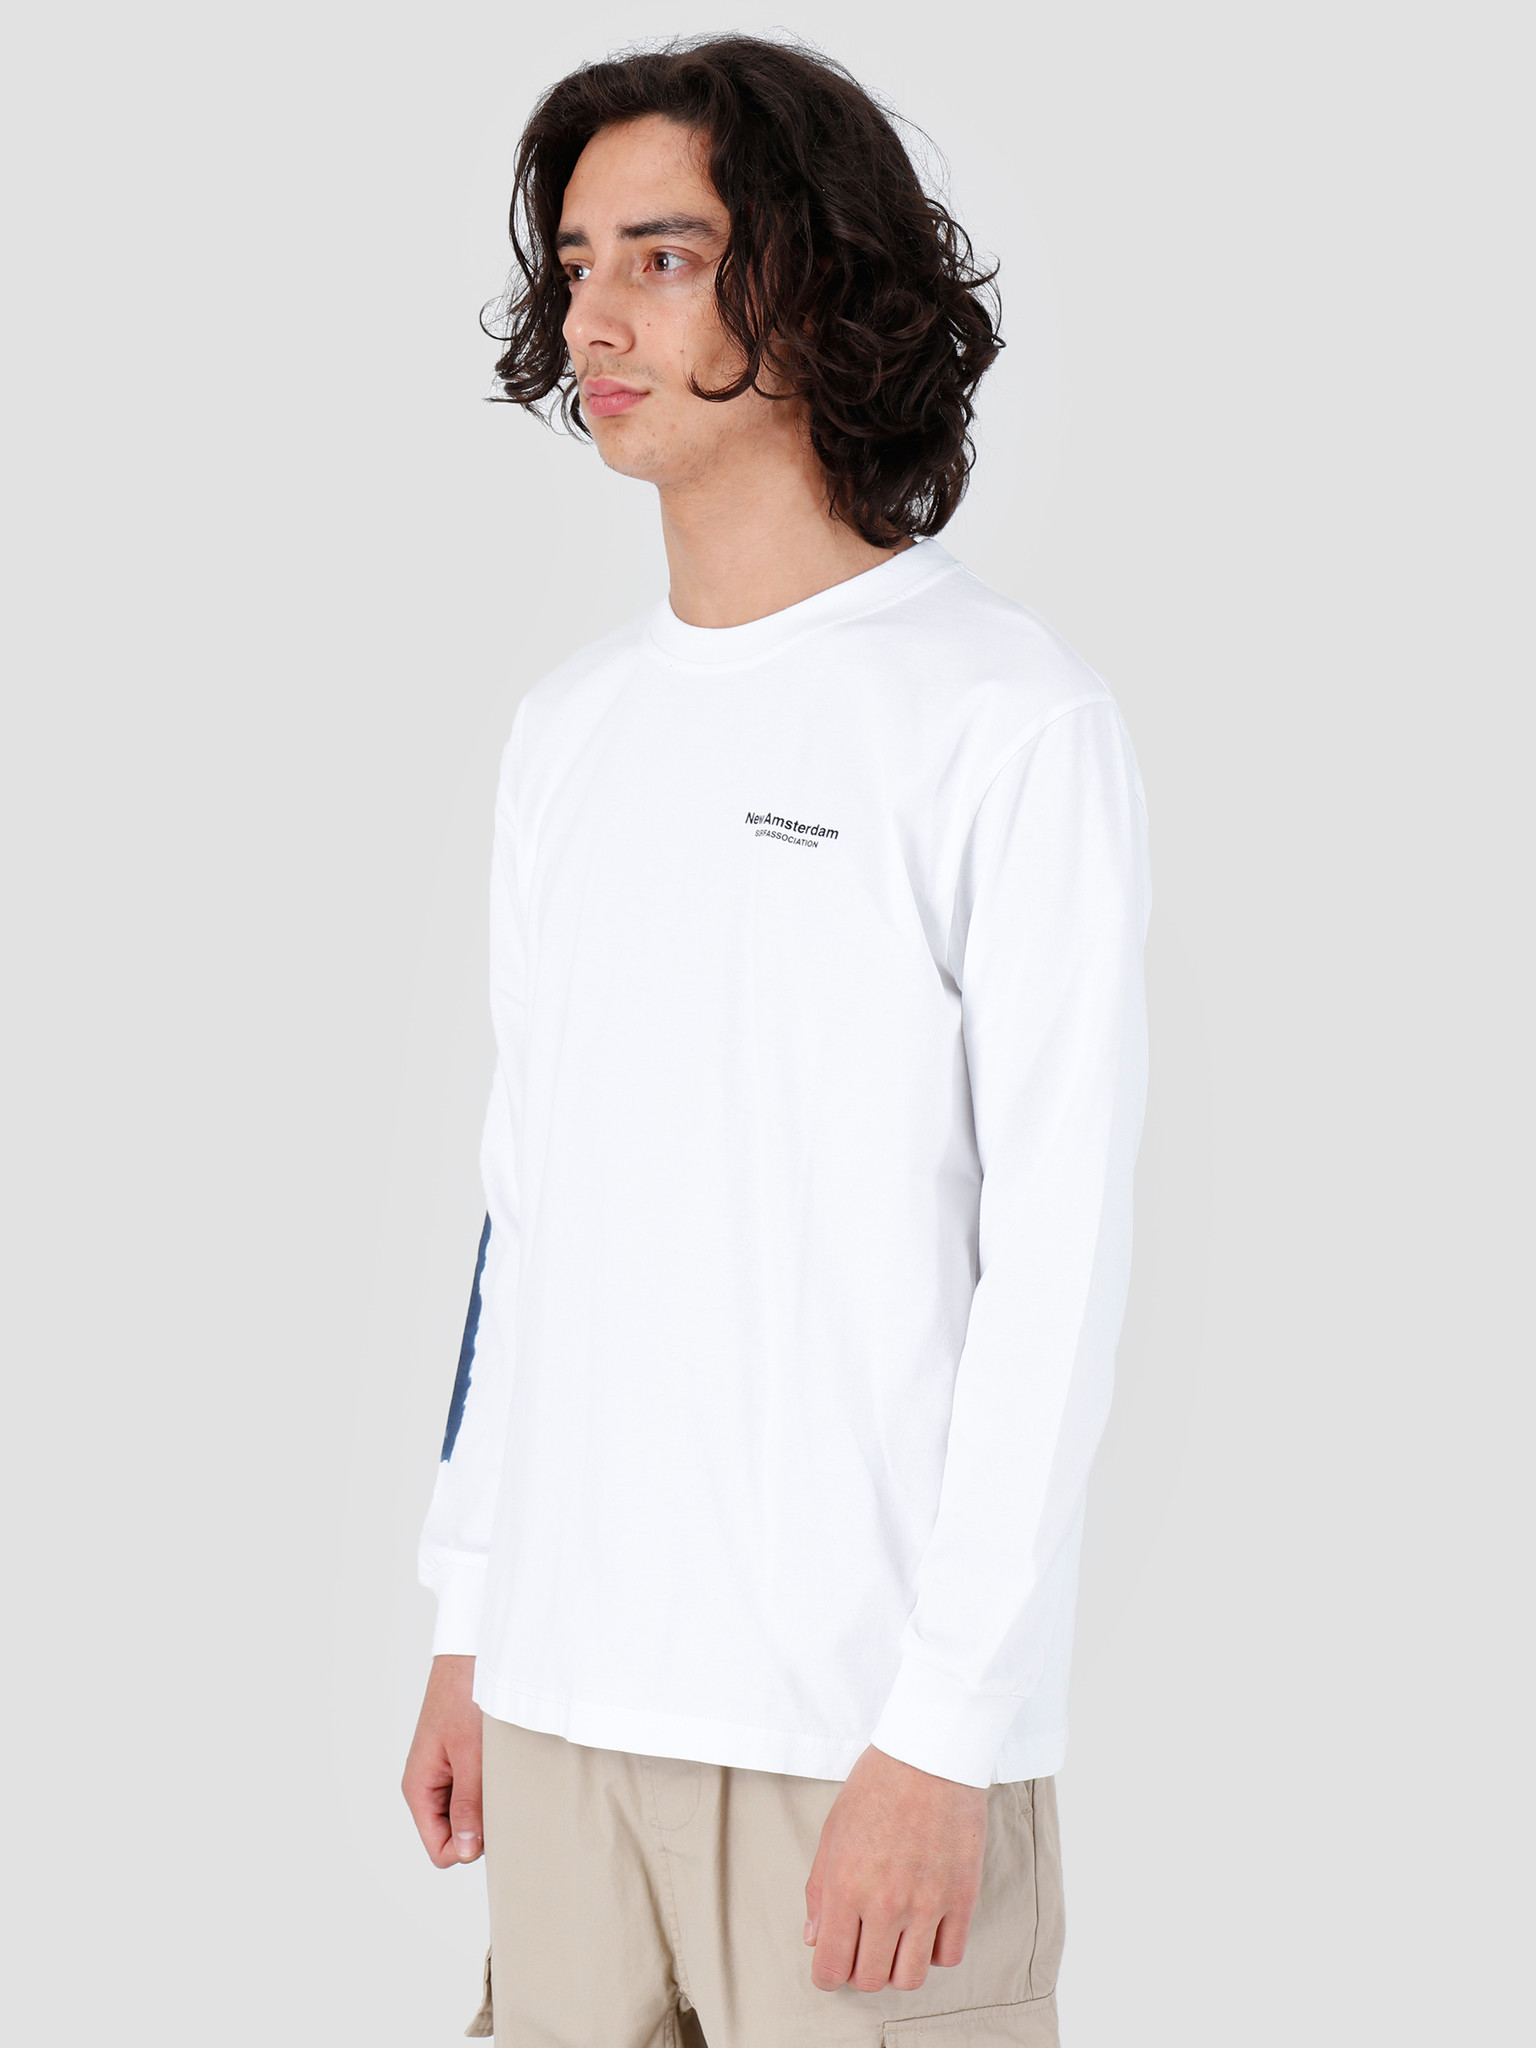 New Amsterdam Surf association New Amsterdam Surf association Aviation Longsleeve White 2018004